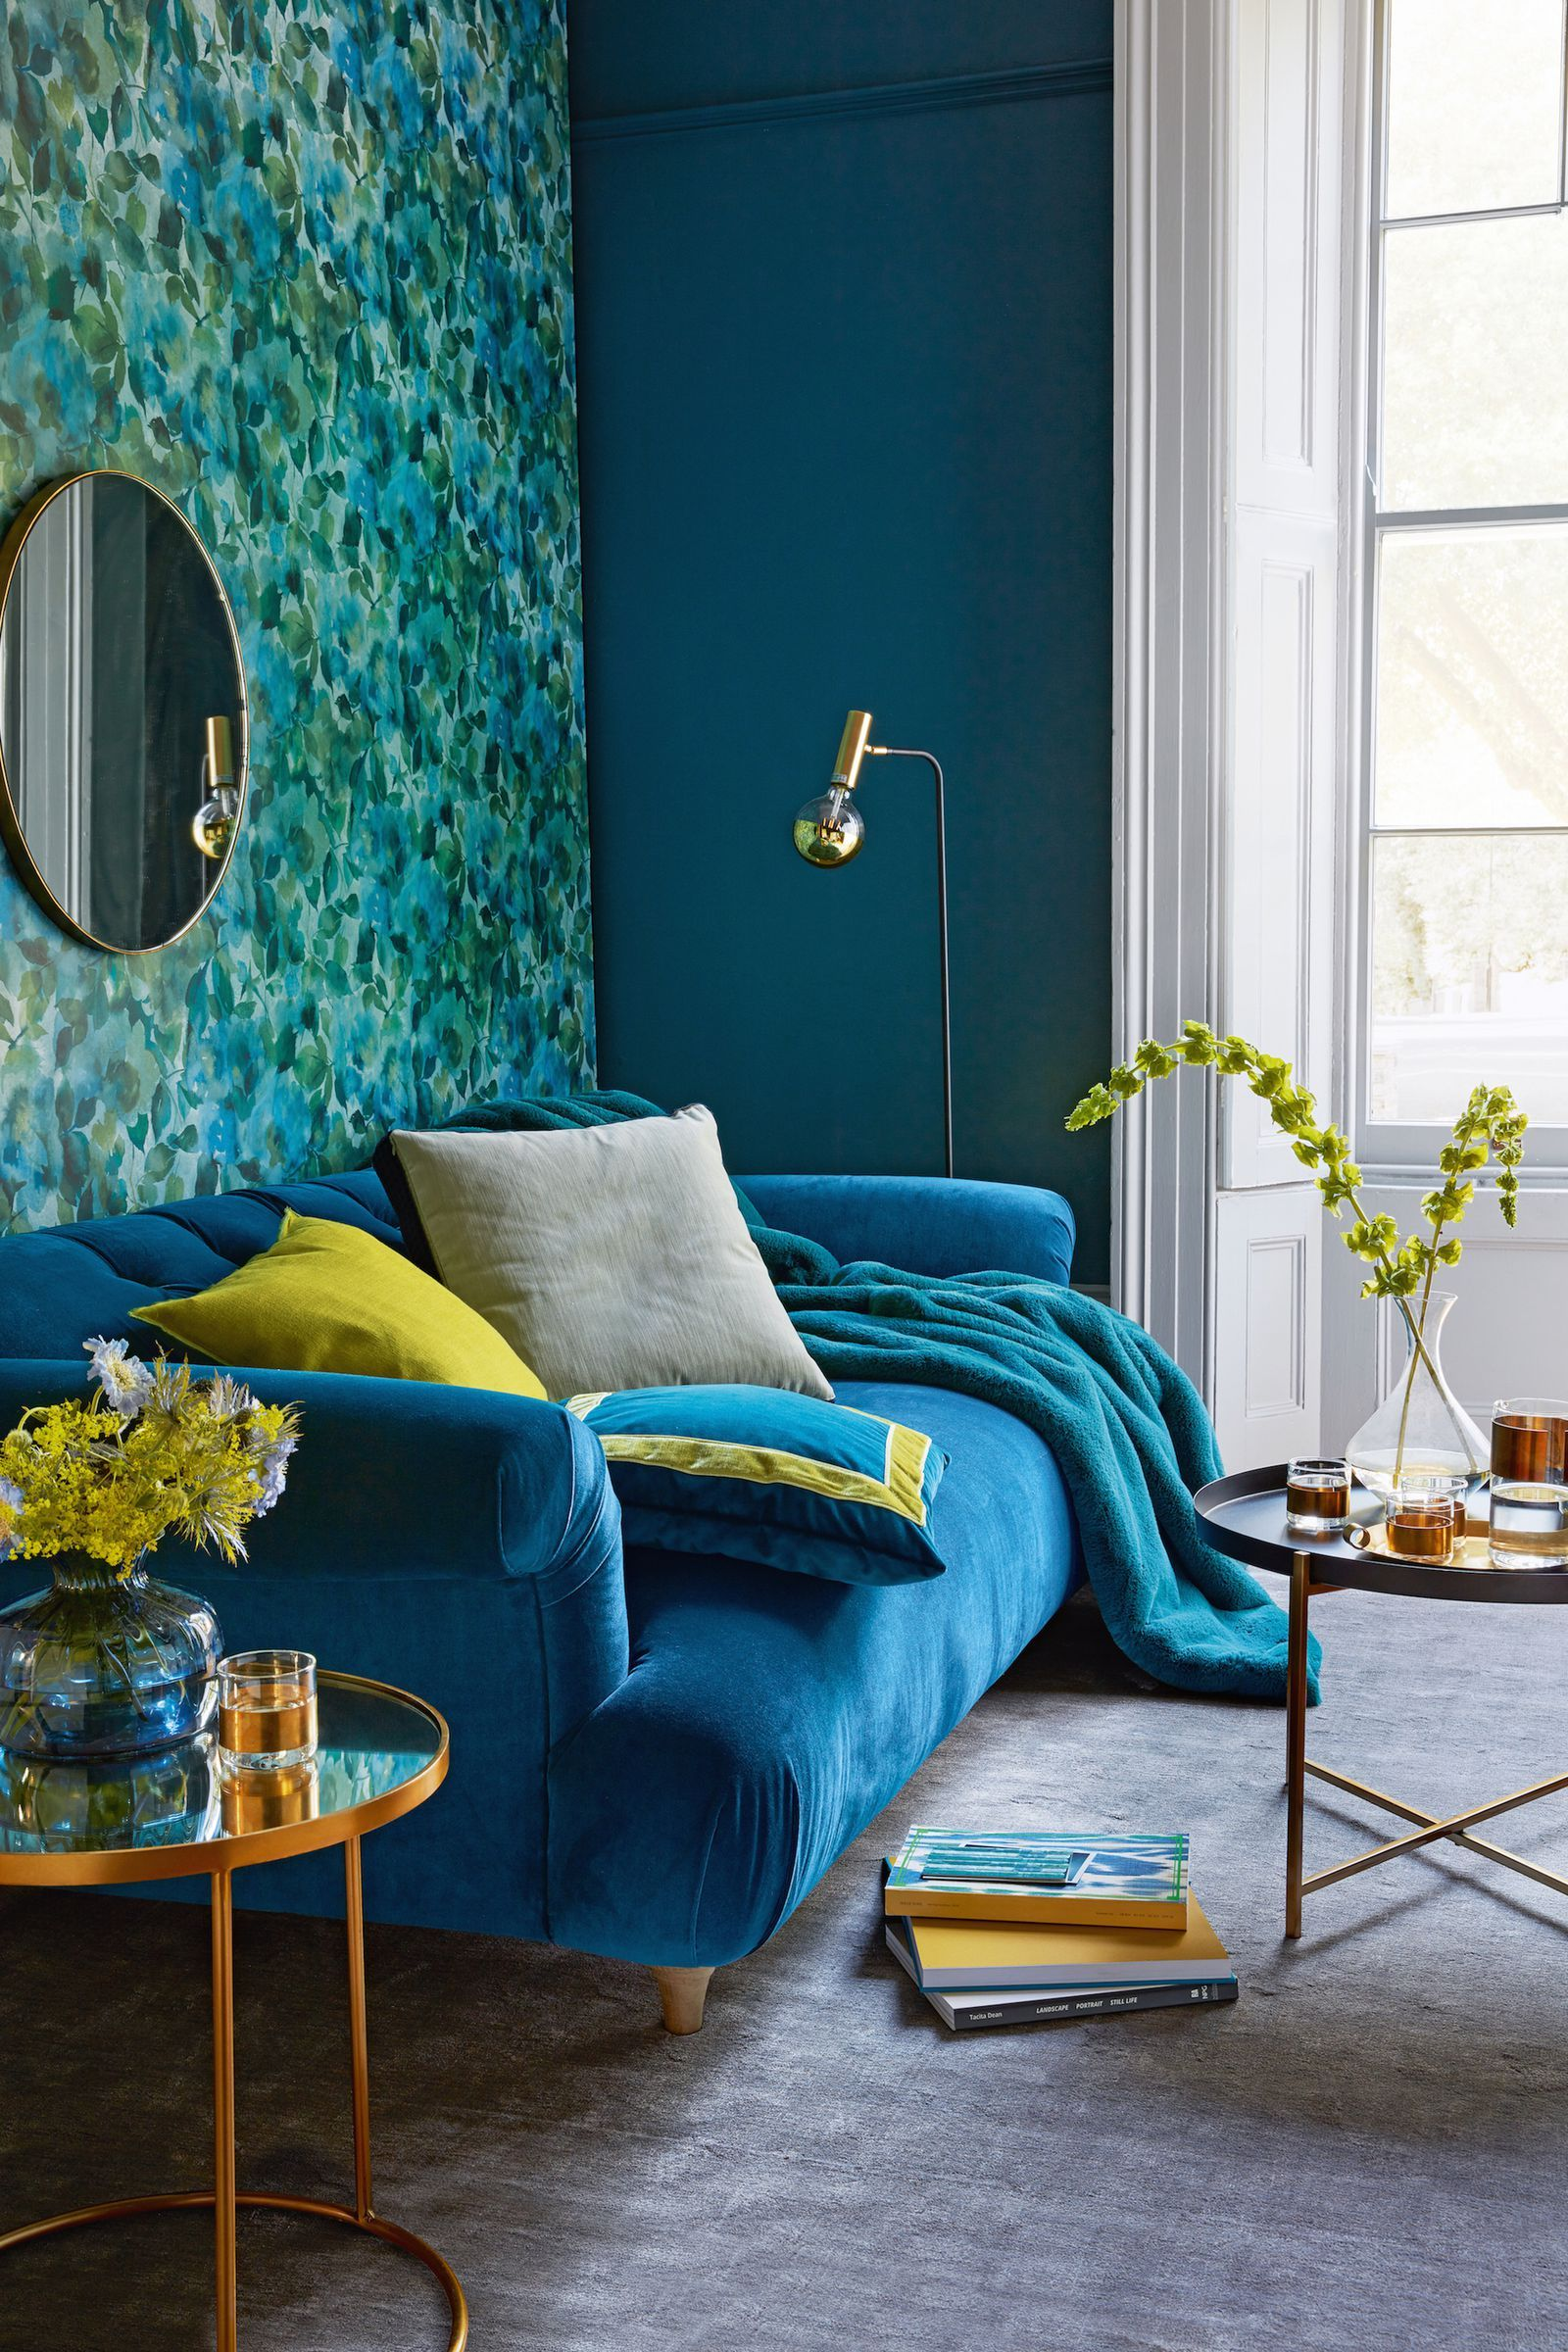 8 Photos That Will Make You Want To Decorate With Ve